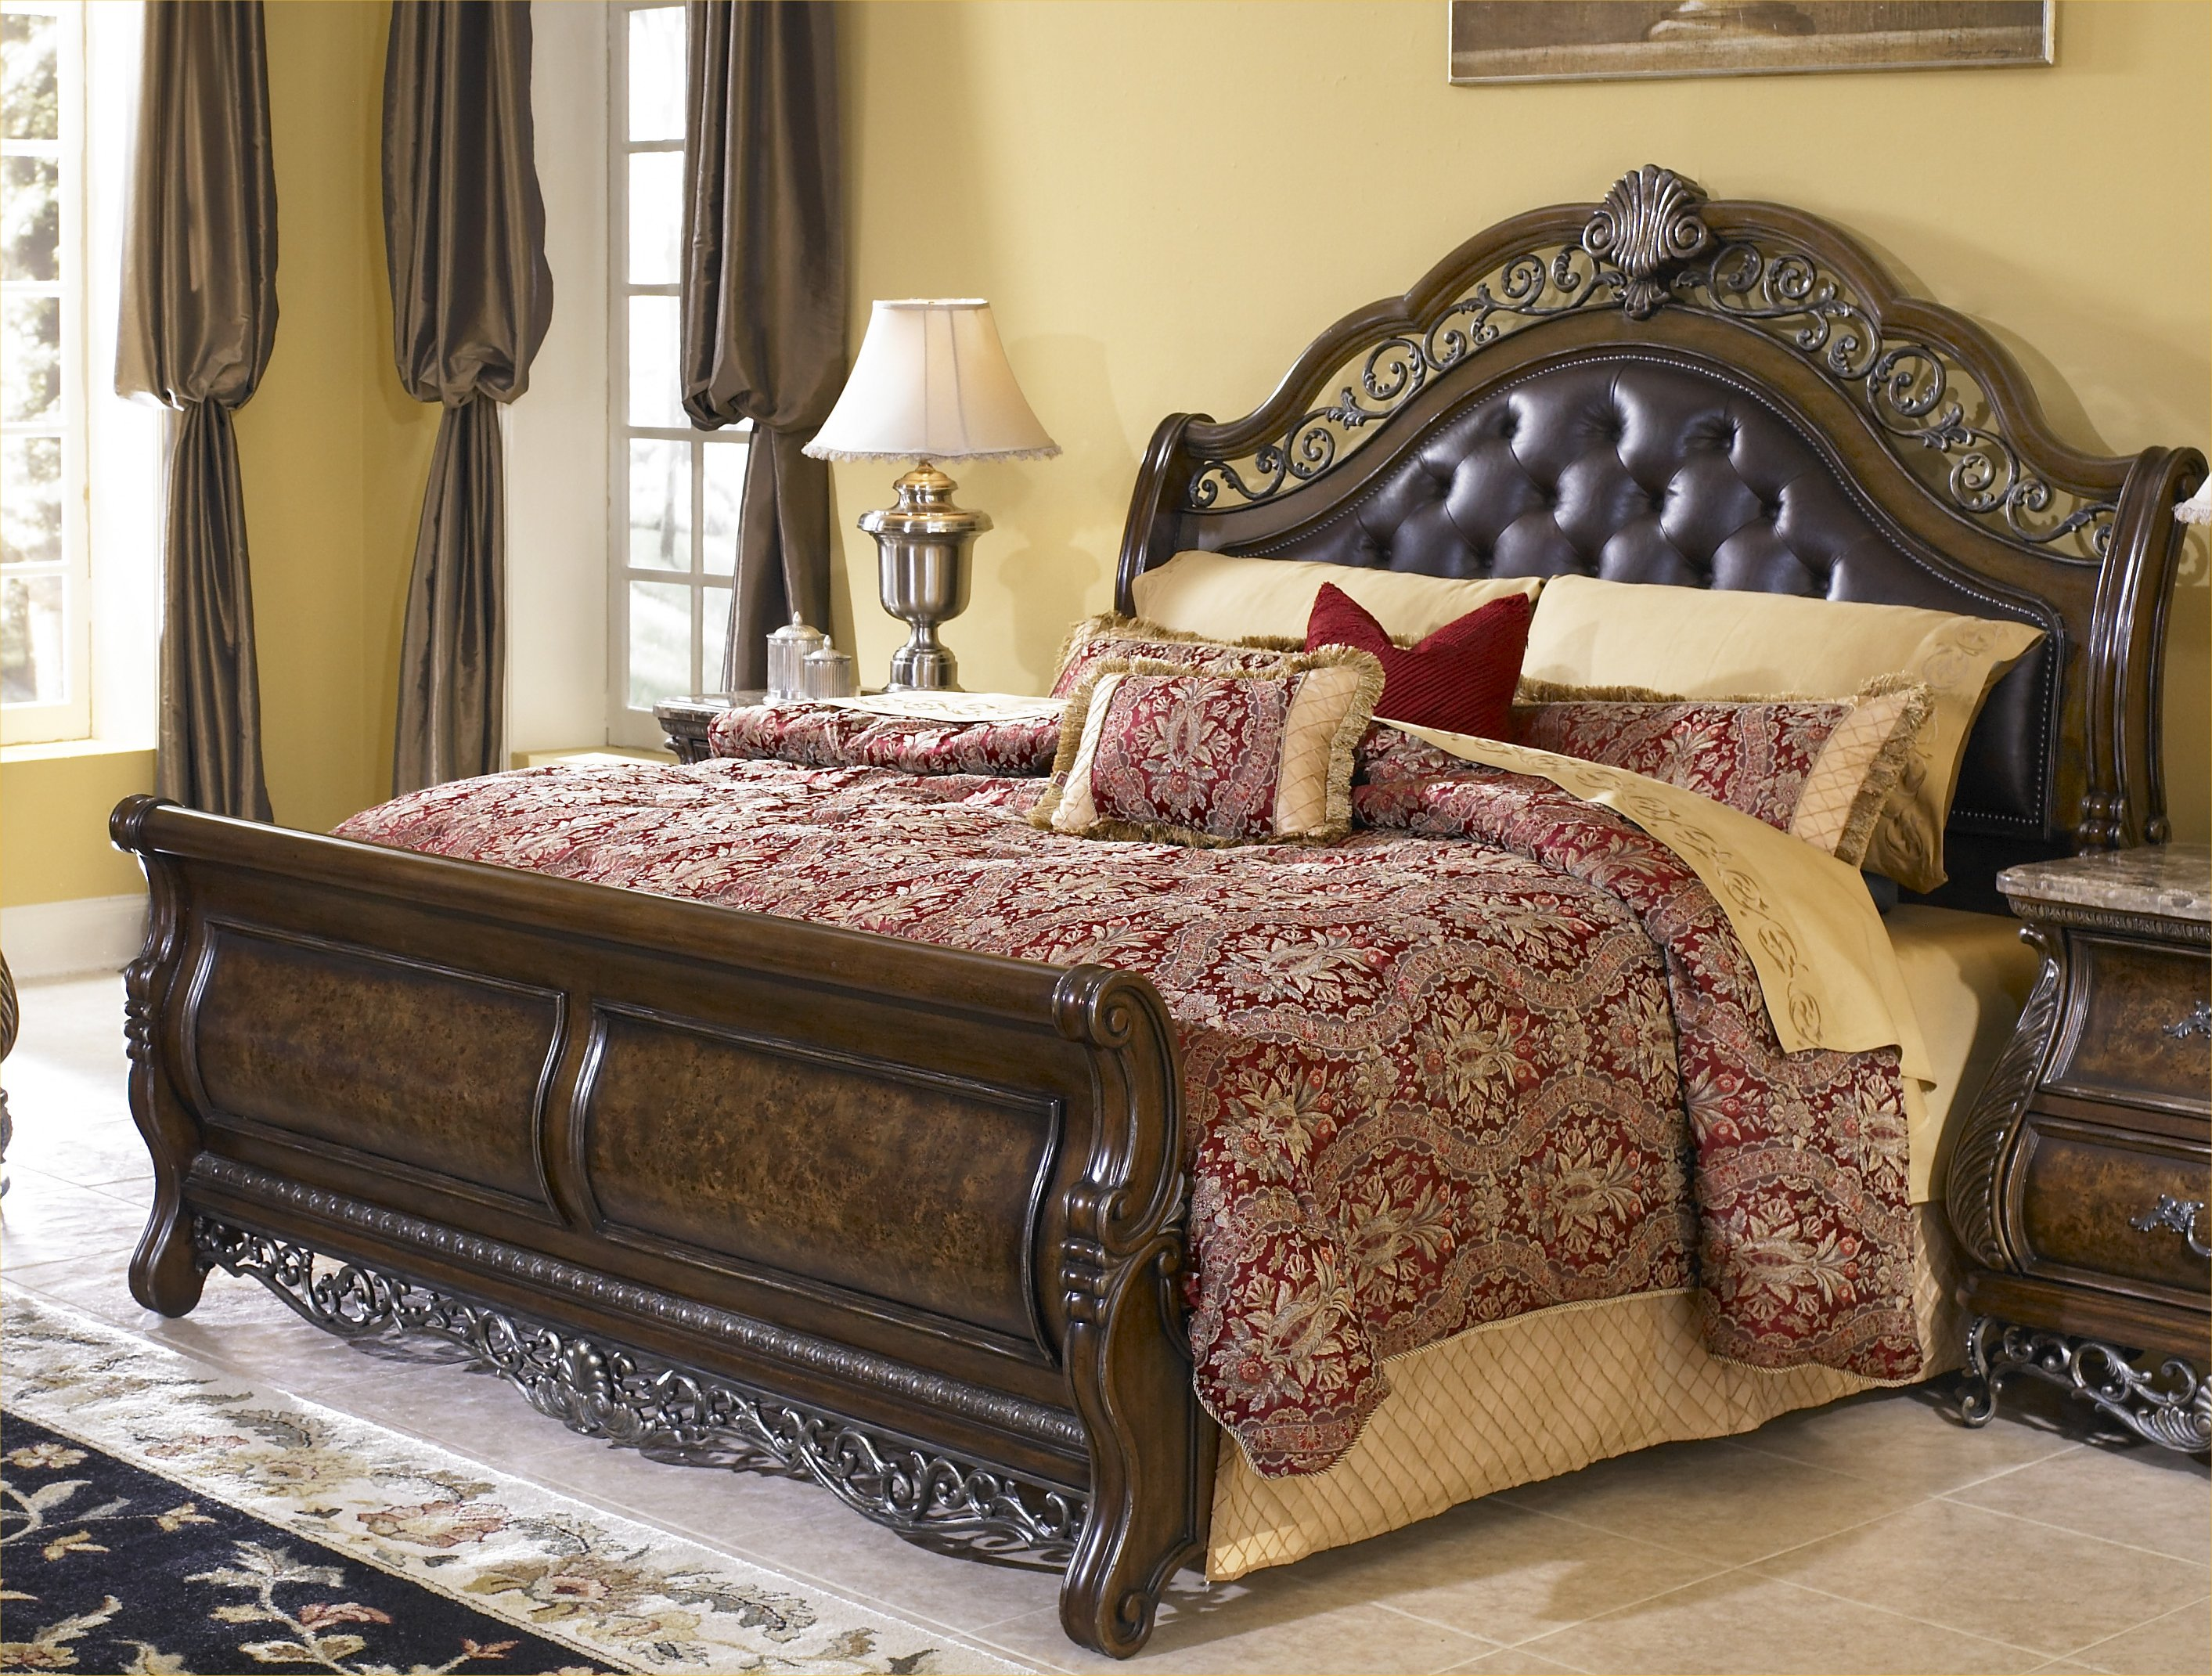 Bedroom Gorgeous King Sleigh Bed With Beautiful Colors For Bedroom